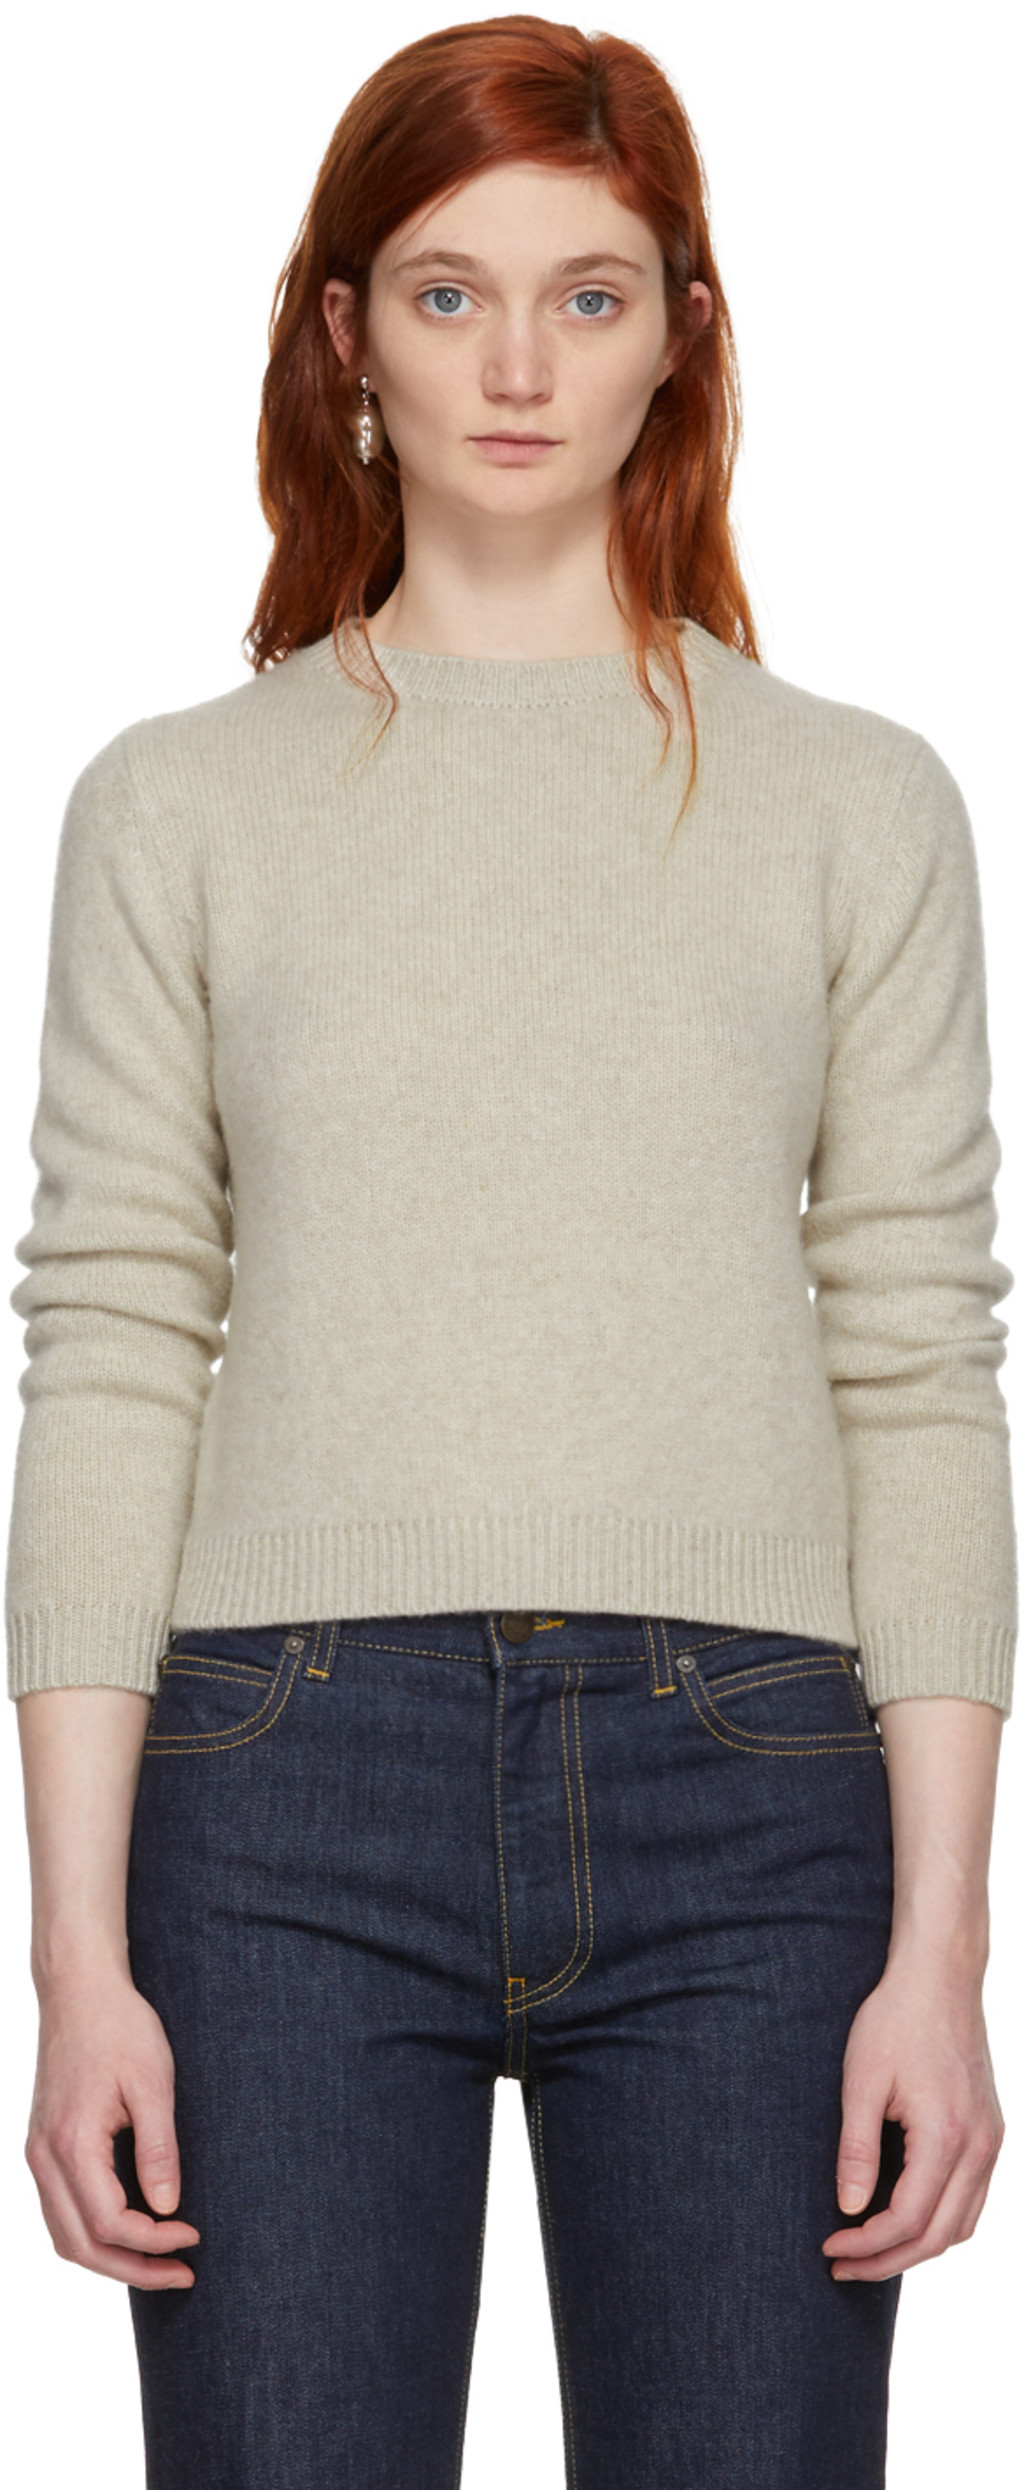 Off-White Cashmere Simple Cropped Crewneck Sweater The Elder Statesman